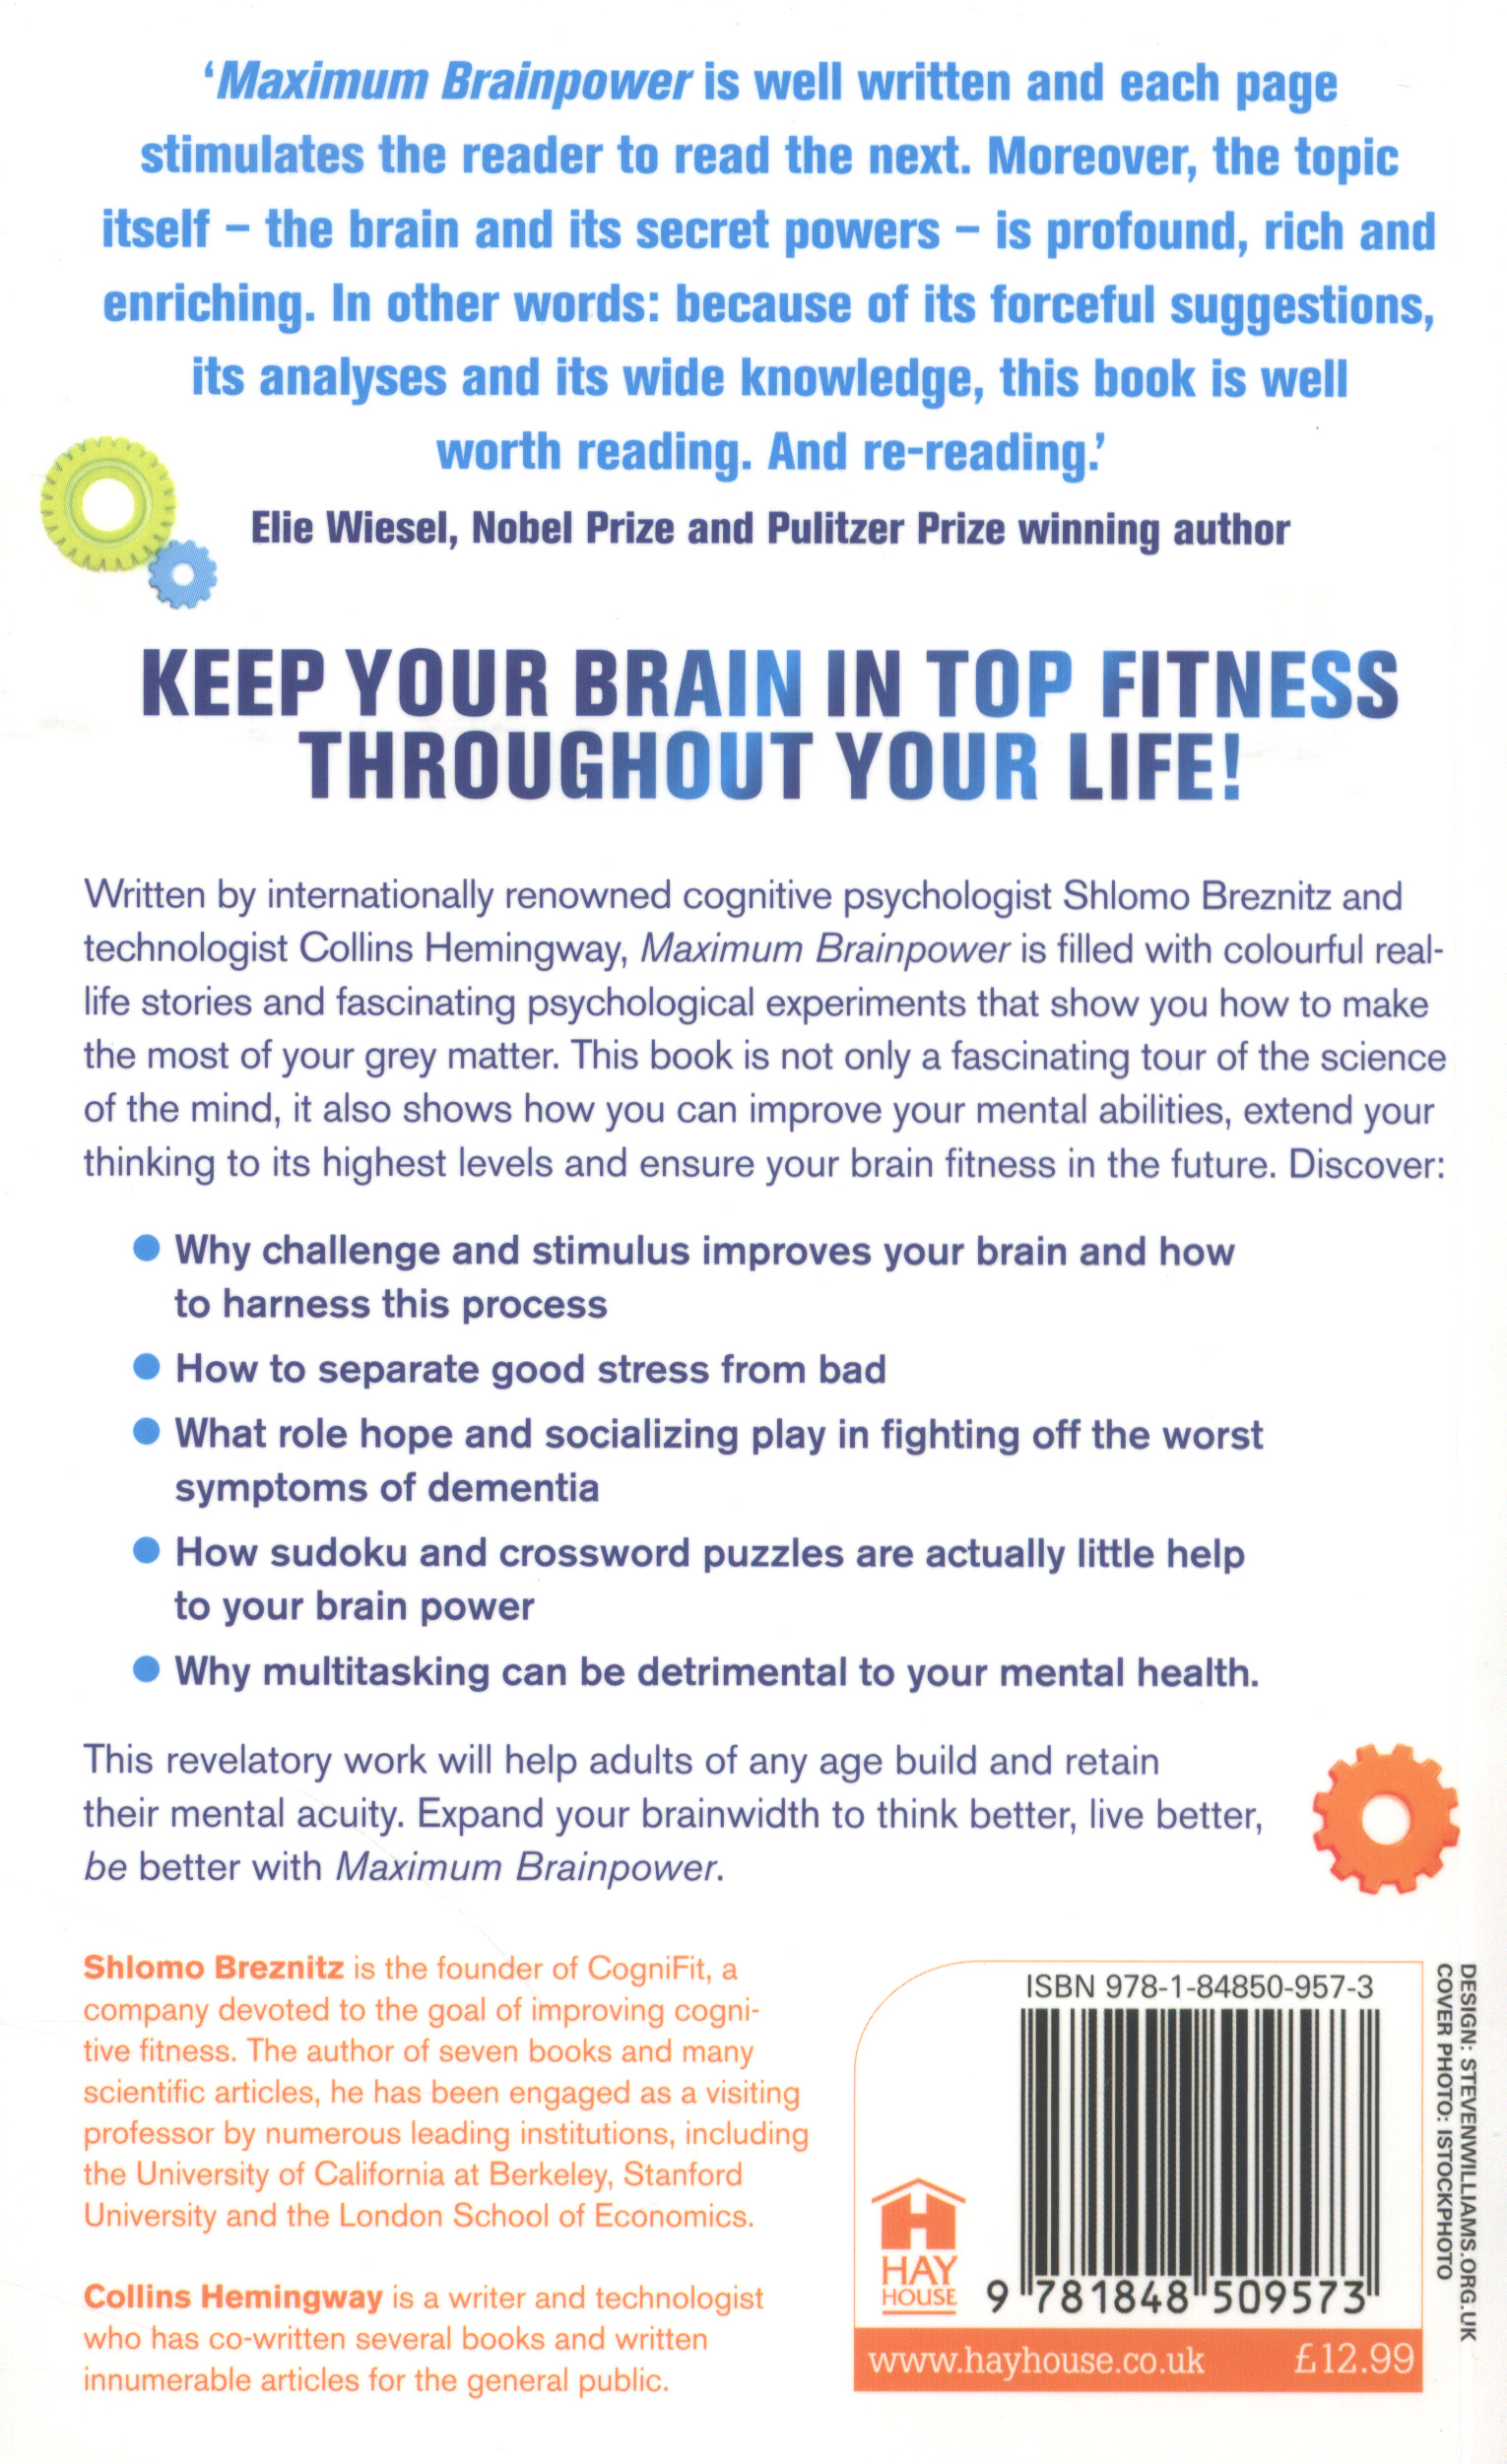 Maximum Brainpower Challenging The Brain For Health And Wisdom By